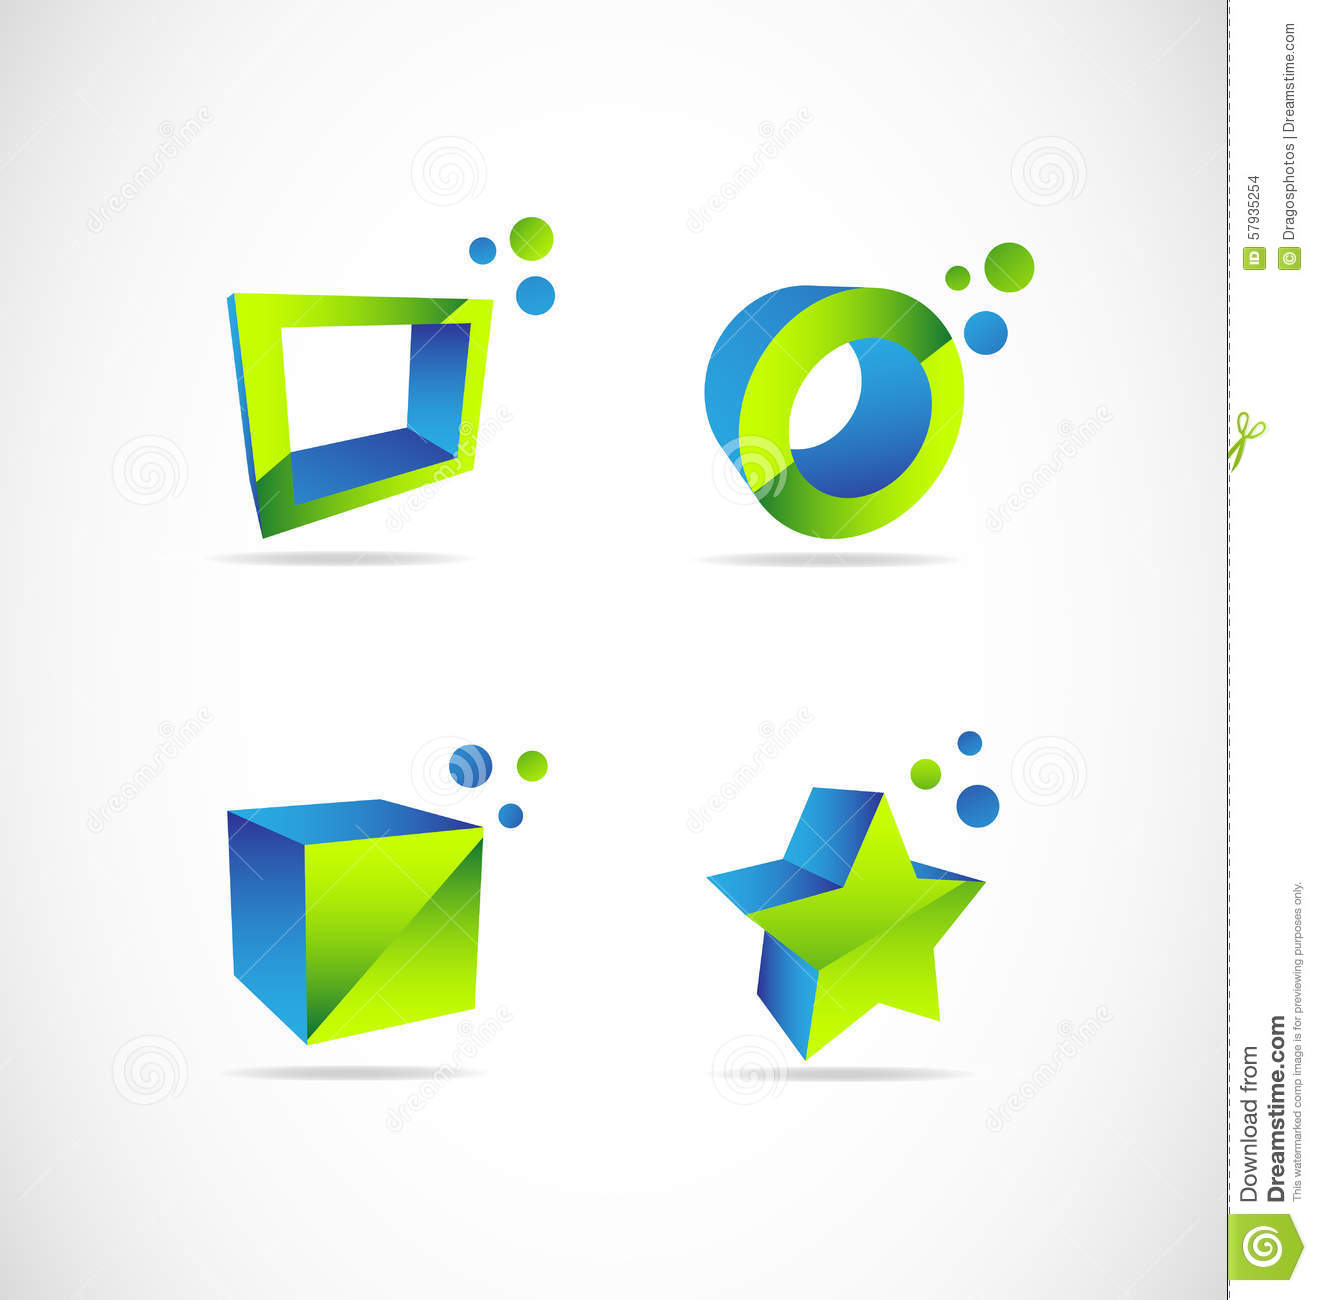 Company 3d logo stock vector. Image of advertising, shape ...